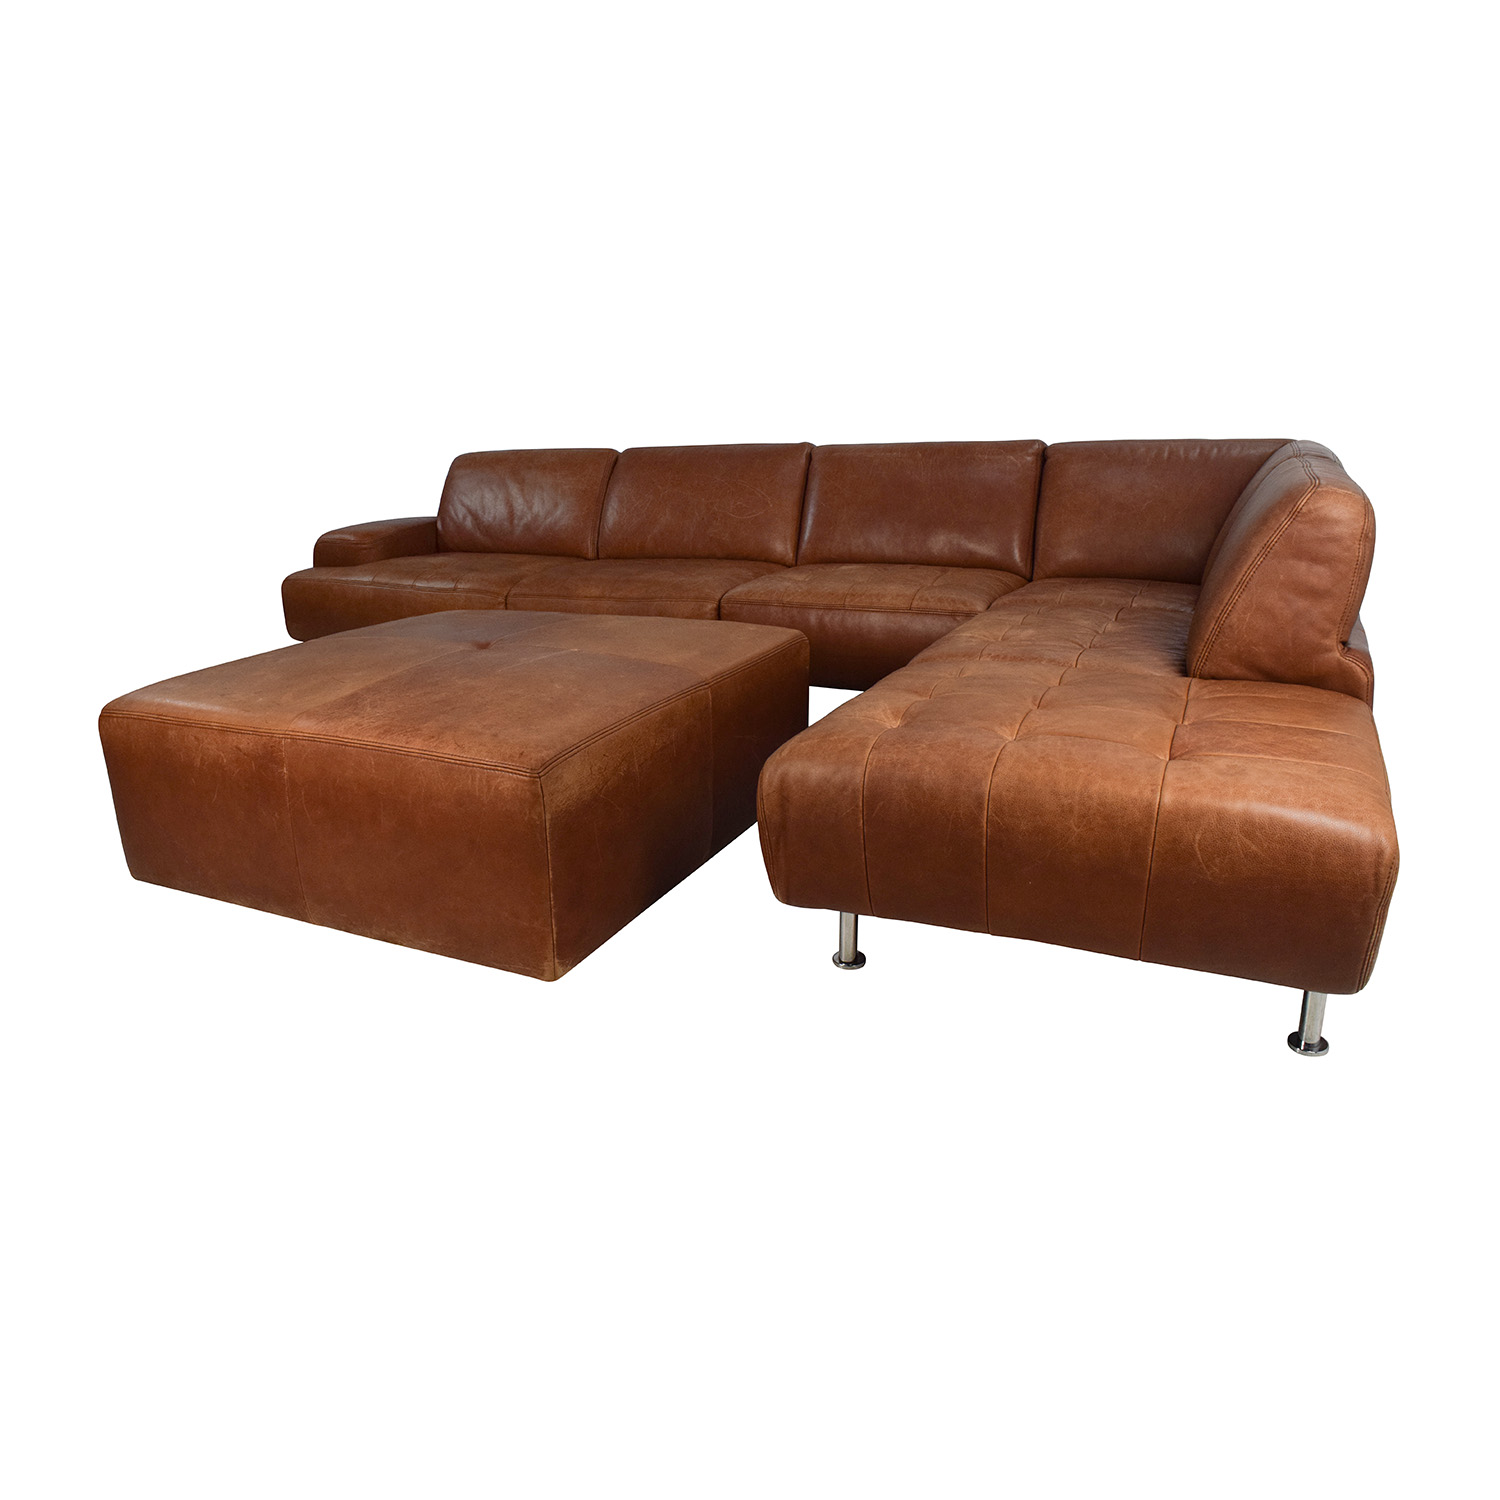 53 off w schillig w schillig leather sectional and ottoman sofas. Black Bedroom Furniture Sets. Home Design Ideas